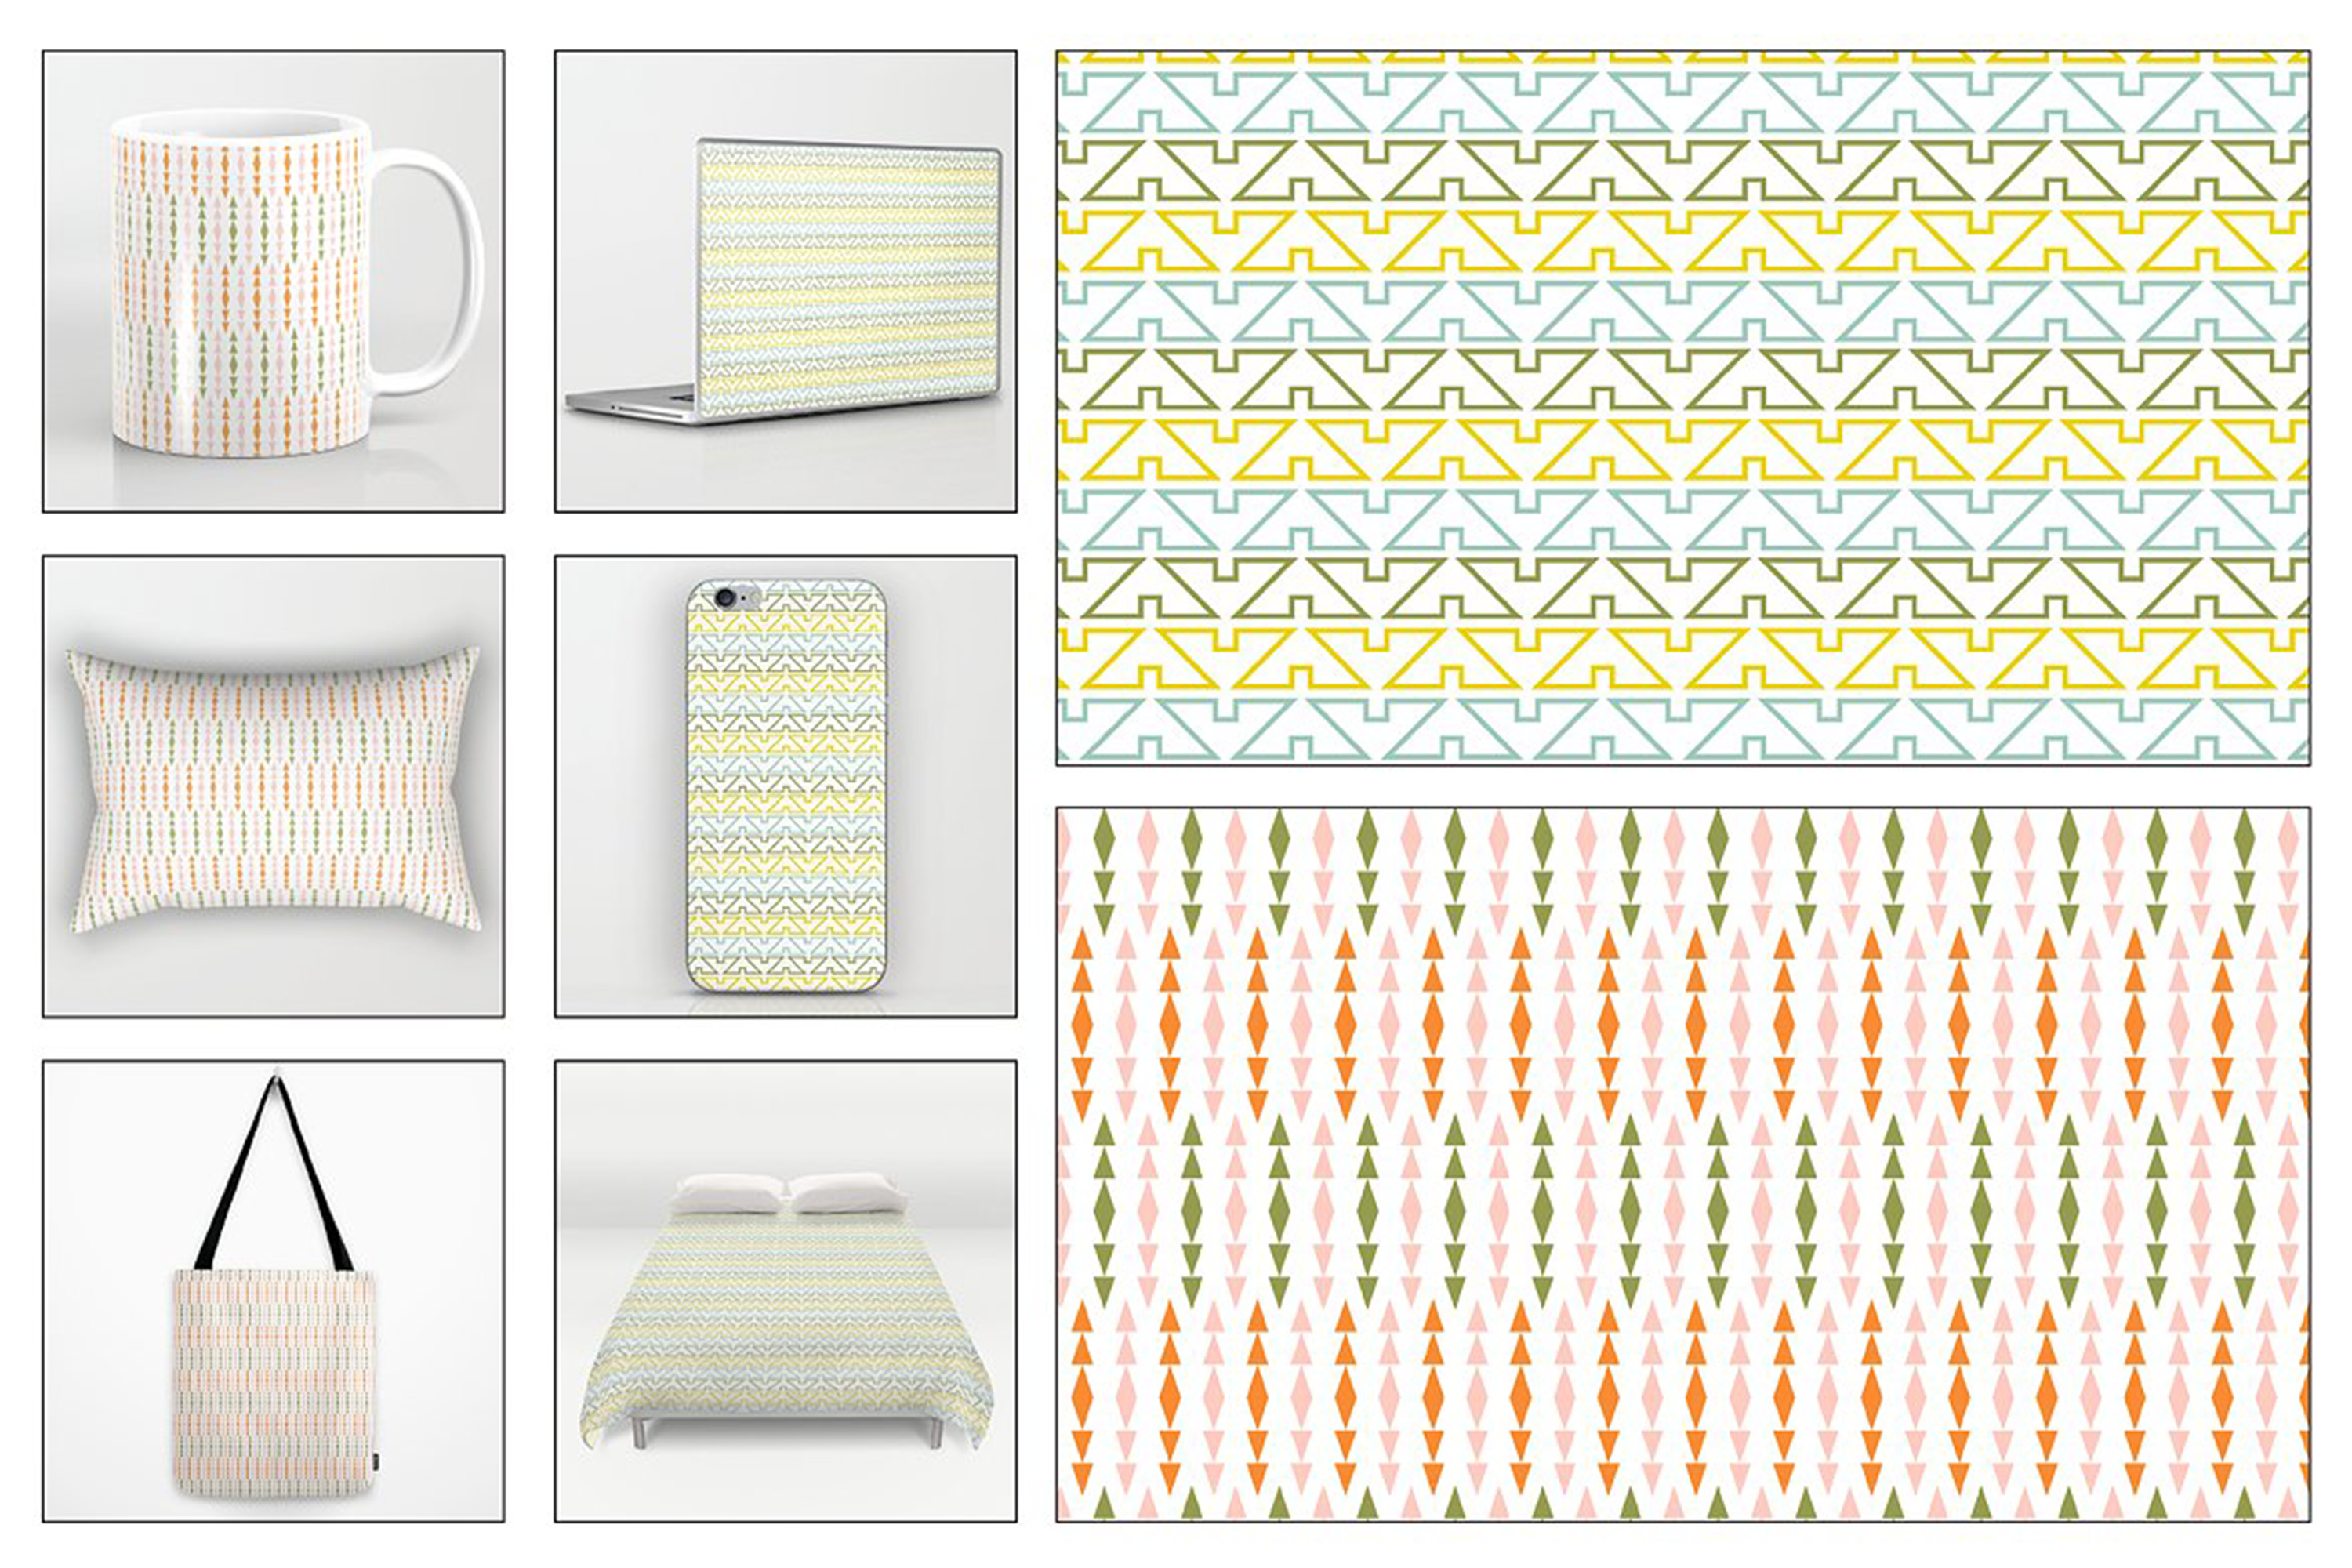 Seamless Pastel Native American Patterns example image 2